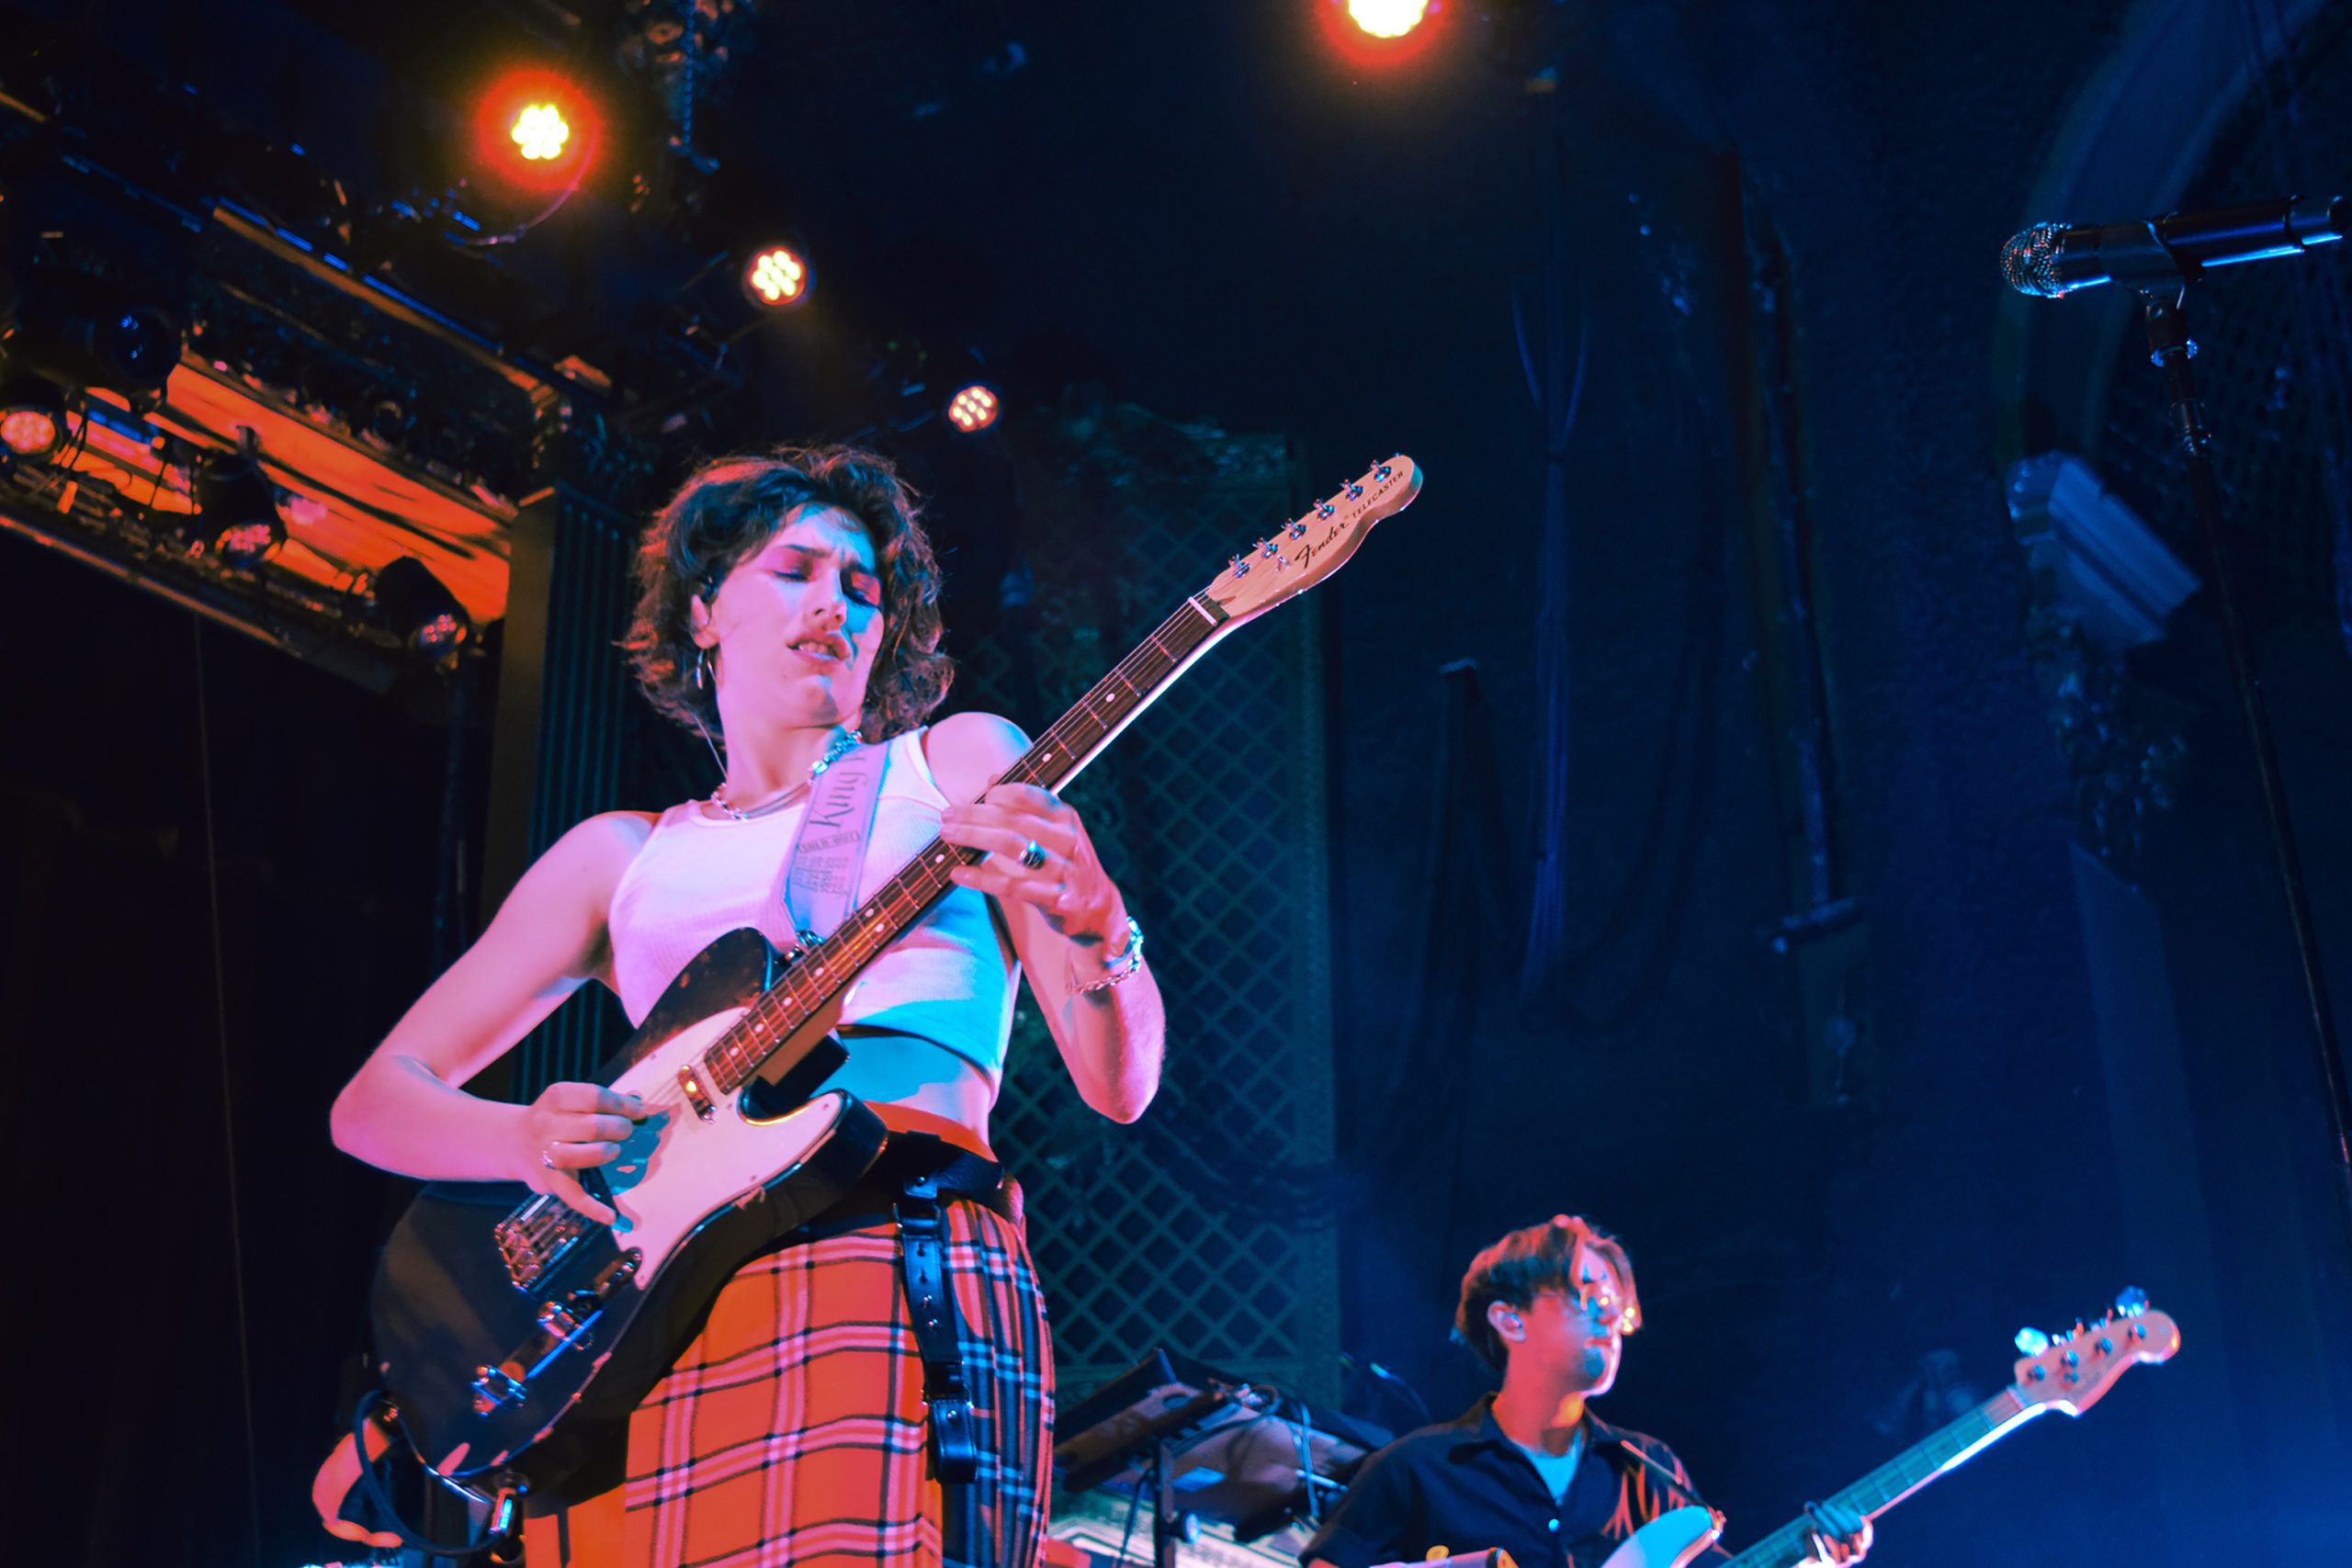 King Princess performs at the Ogden Theatre in Denver on Feb. 20, 2020.